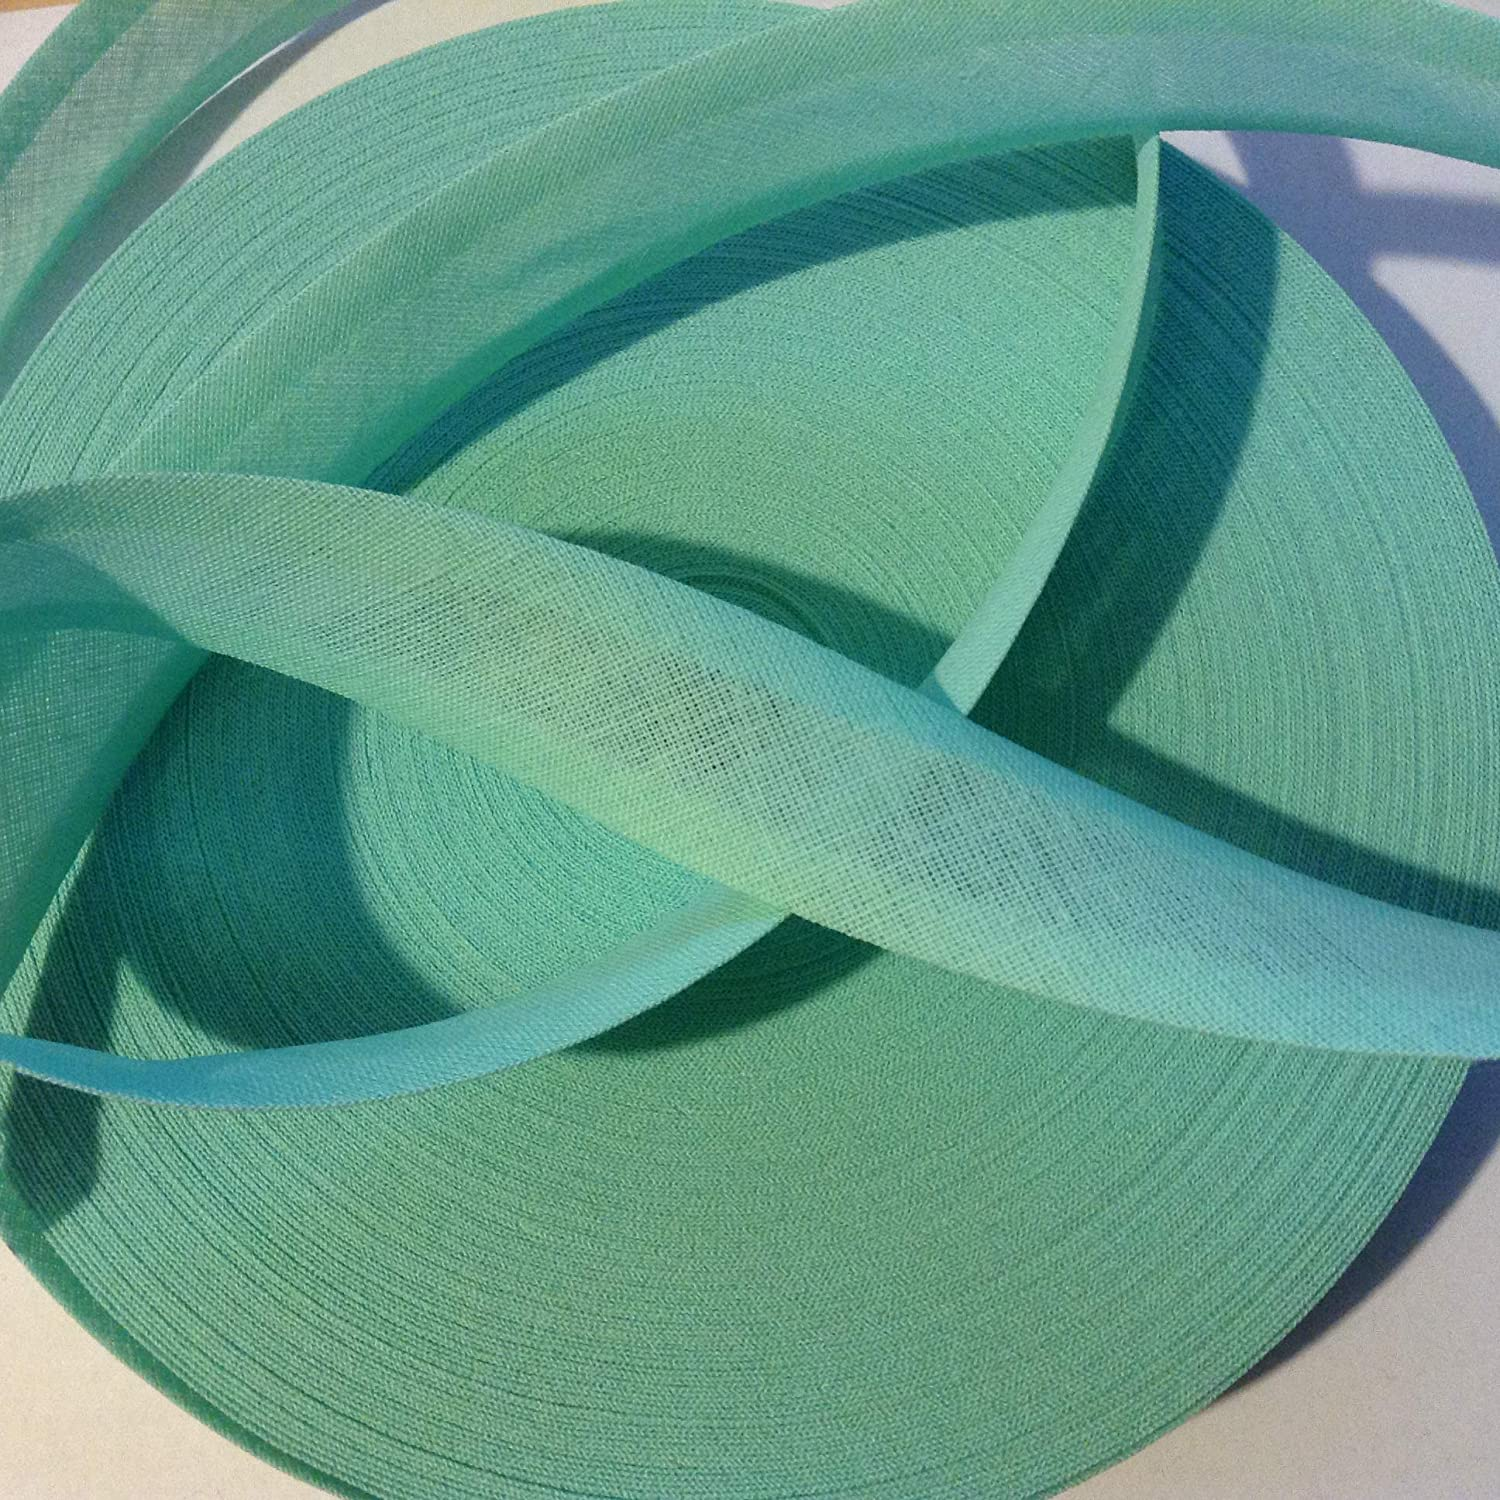 Crafting 2m x 25mm Pale Green bias Binding which Would be Ideal for Sewing Scrapbooking and All Those Other Projects.Incomplete